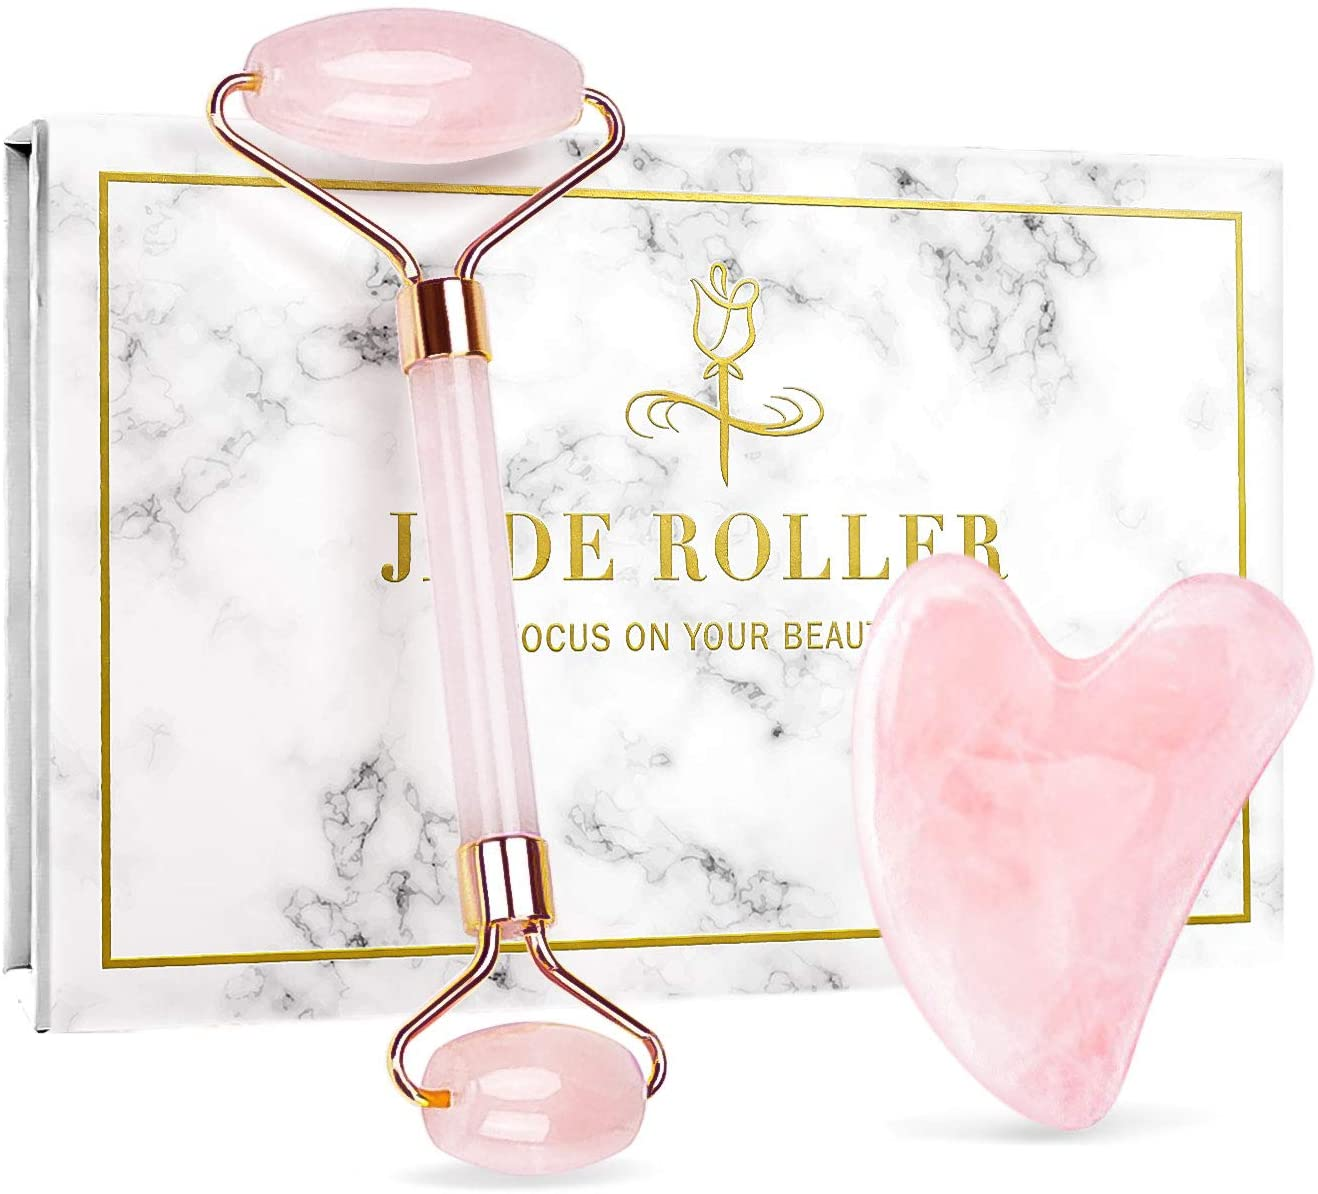 Jade Roller & Gua Sha Set for Beautiful Skin Detox - Face Roller, Facial Body Eyes Neck Massager Tool, Facial Beauty Roller Skin Care Tools - Body Muscle Relaxing and Relieve Fine Lines and Wrinkles